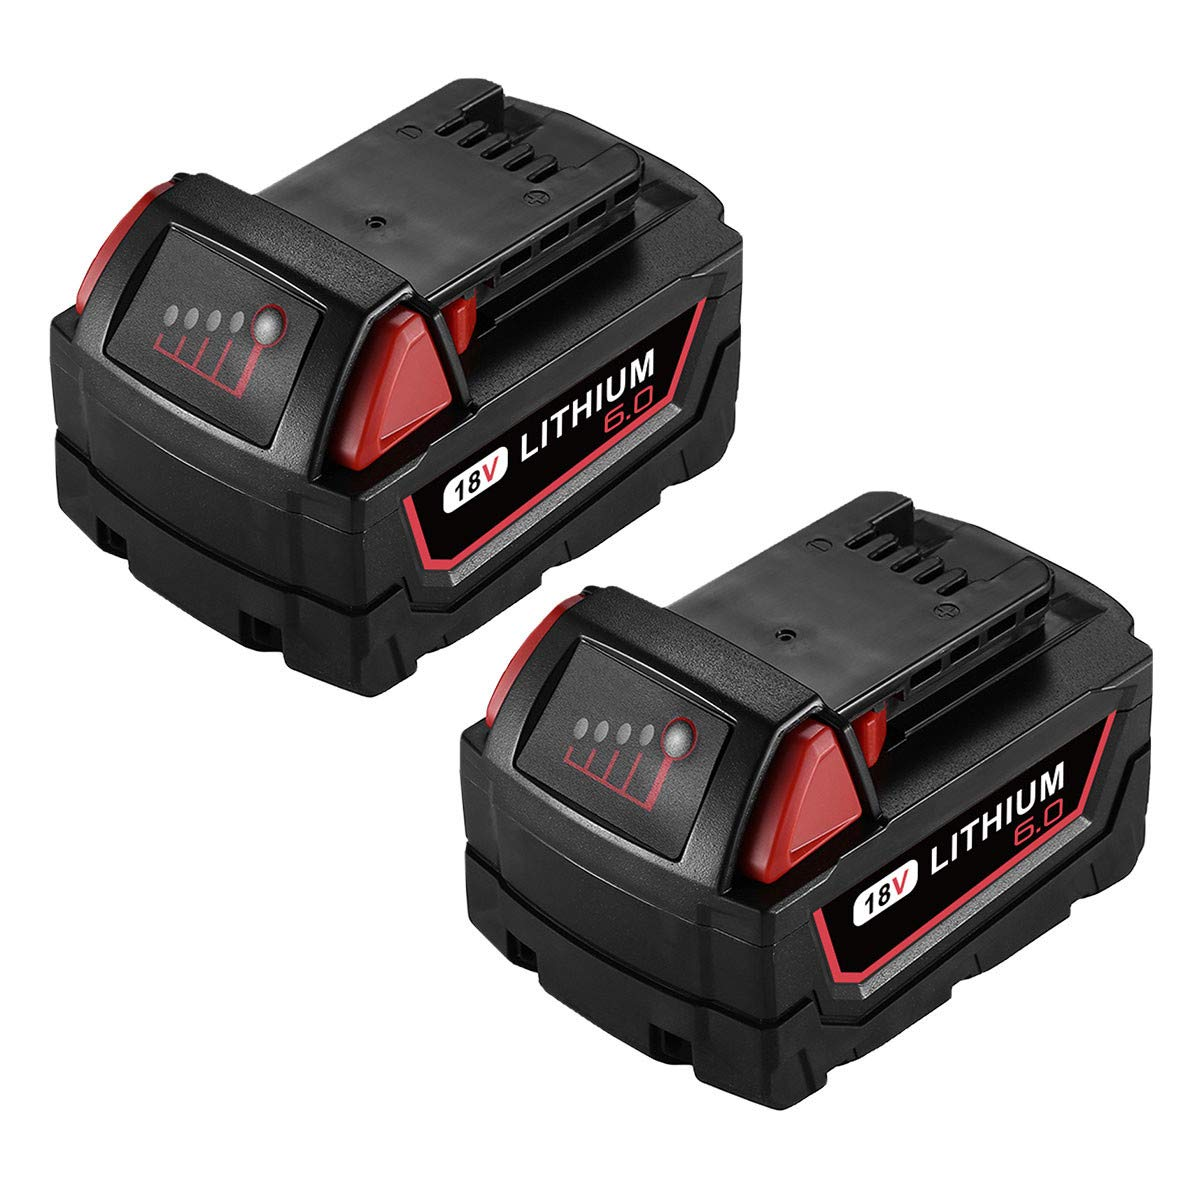 Powerextra 18V 6.0AH Replacement Battery Compatible with Milwaukee 48-11-1852 M18 Lithium XC 6.0 Ah M18B 48-11-1850 48-11-1852 48-11-1820 M18 Battery 2Pack